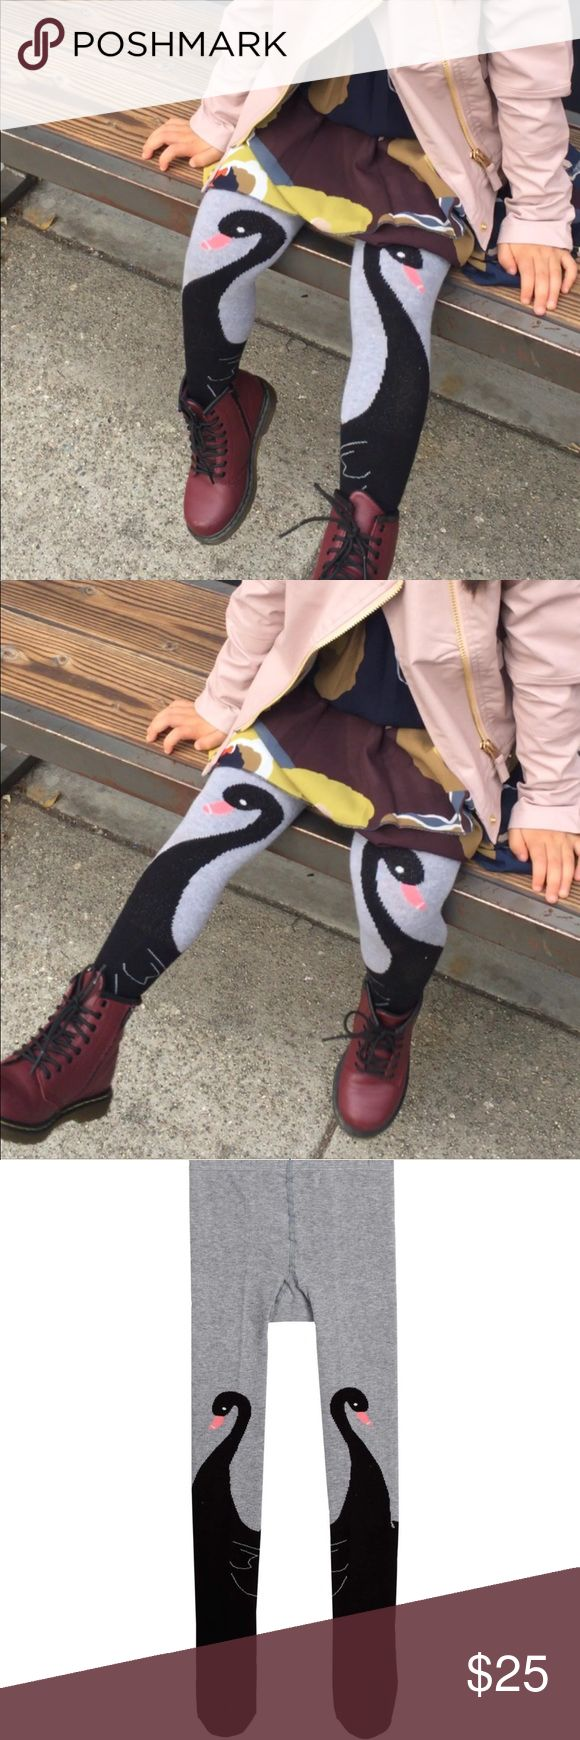 Black Swan Tights for girls Black Swan printed on Grey color tights Cotton blend paperwings Bottoms Leggings